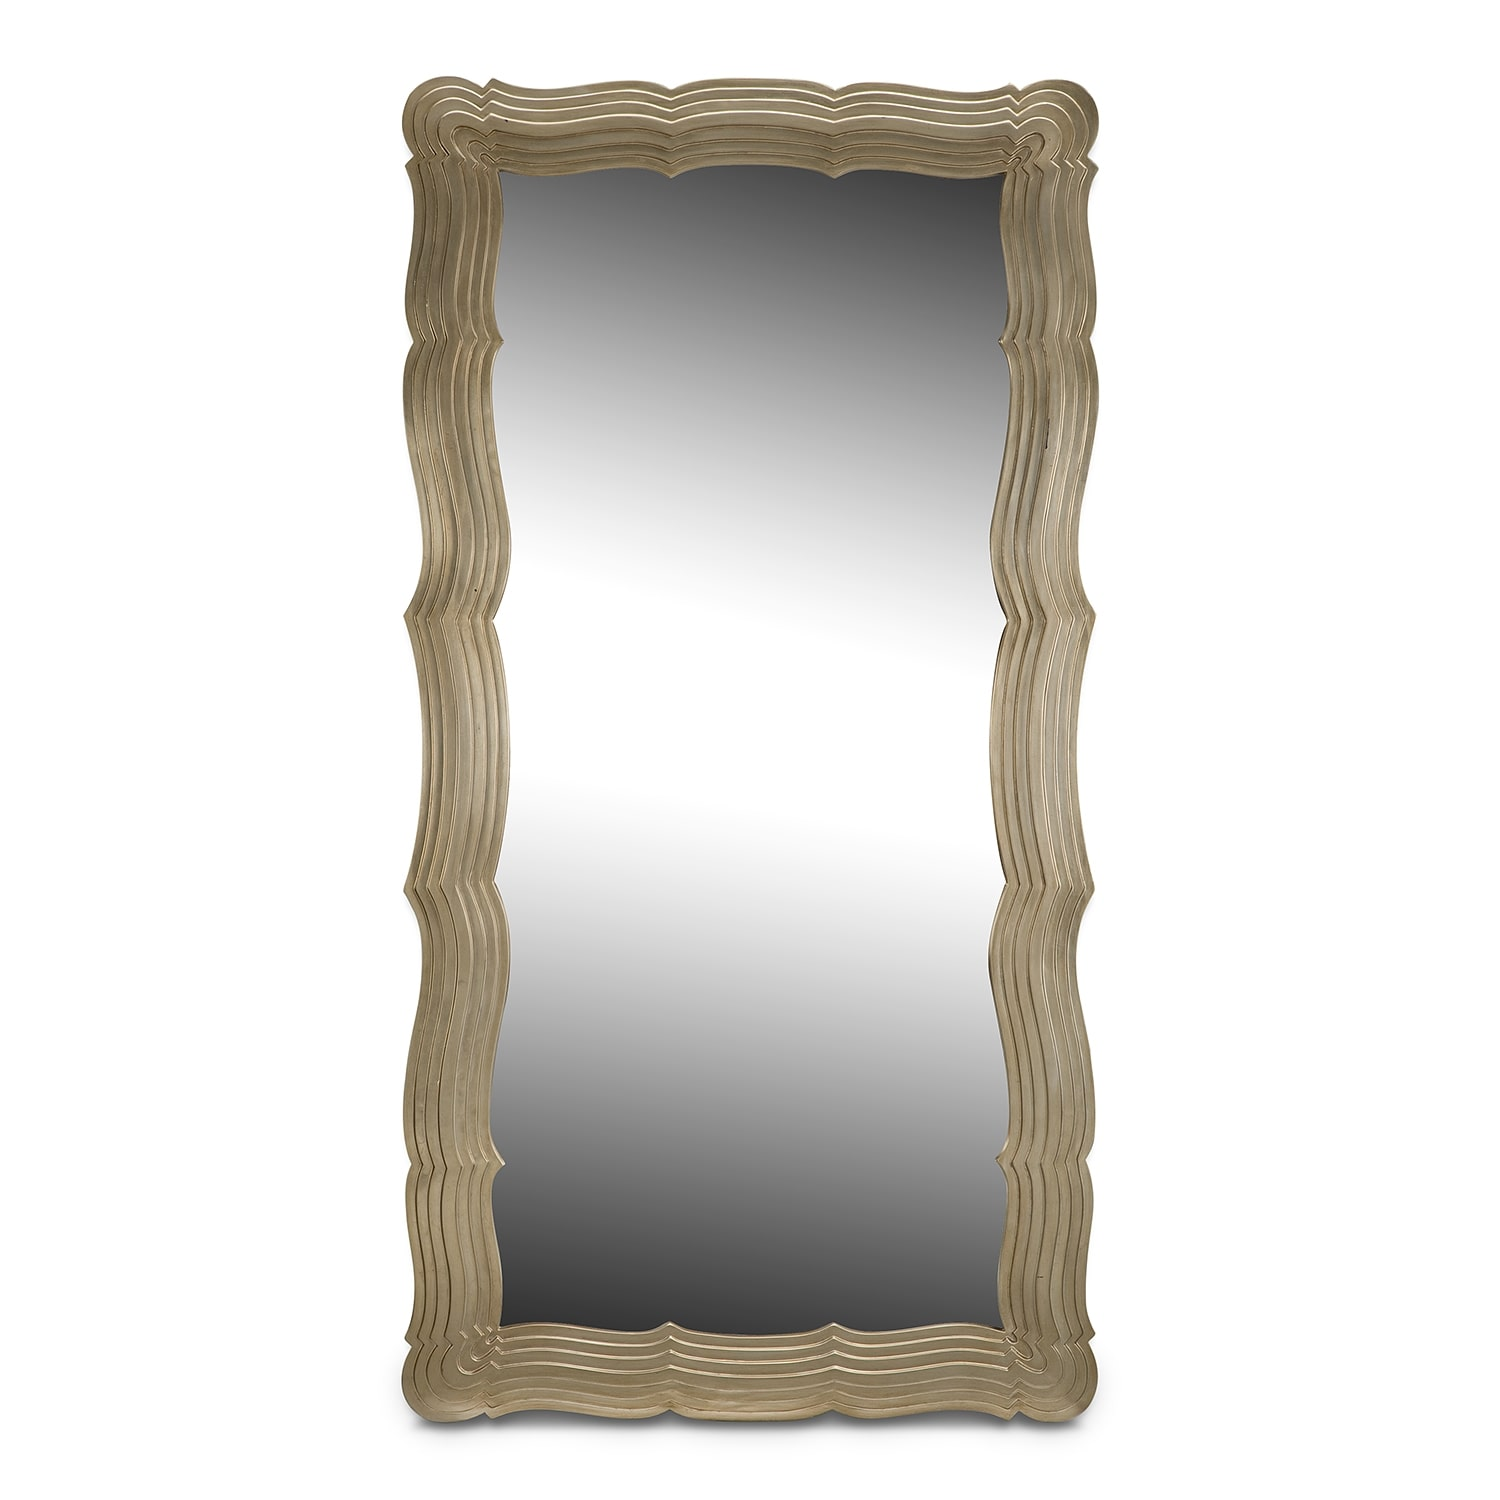 Home Accessories - Bella Antique Floor Mirror - Antique Silver